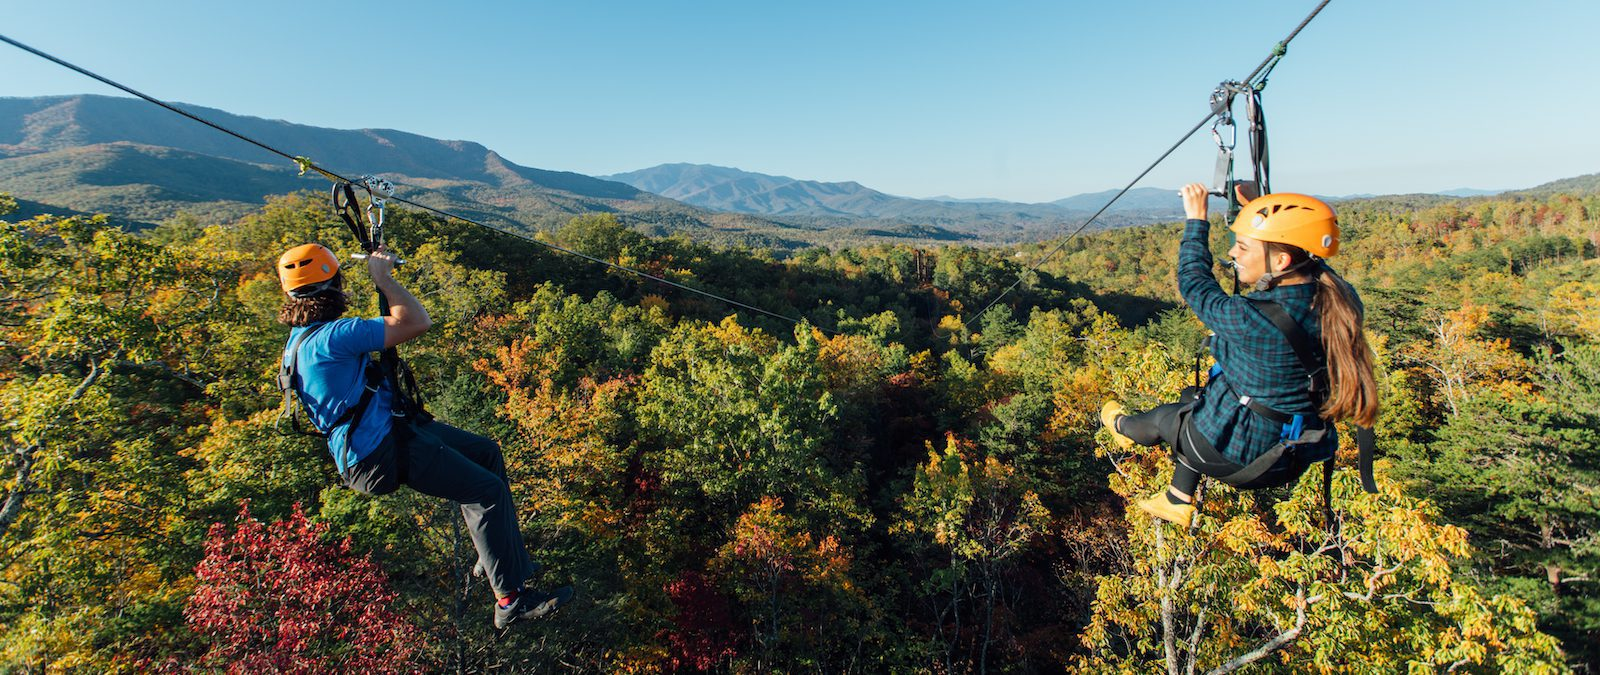 Top Dos and Don'ts of Ziplining in the Smoky Mountains